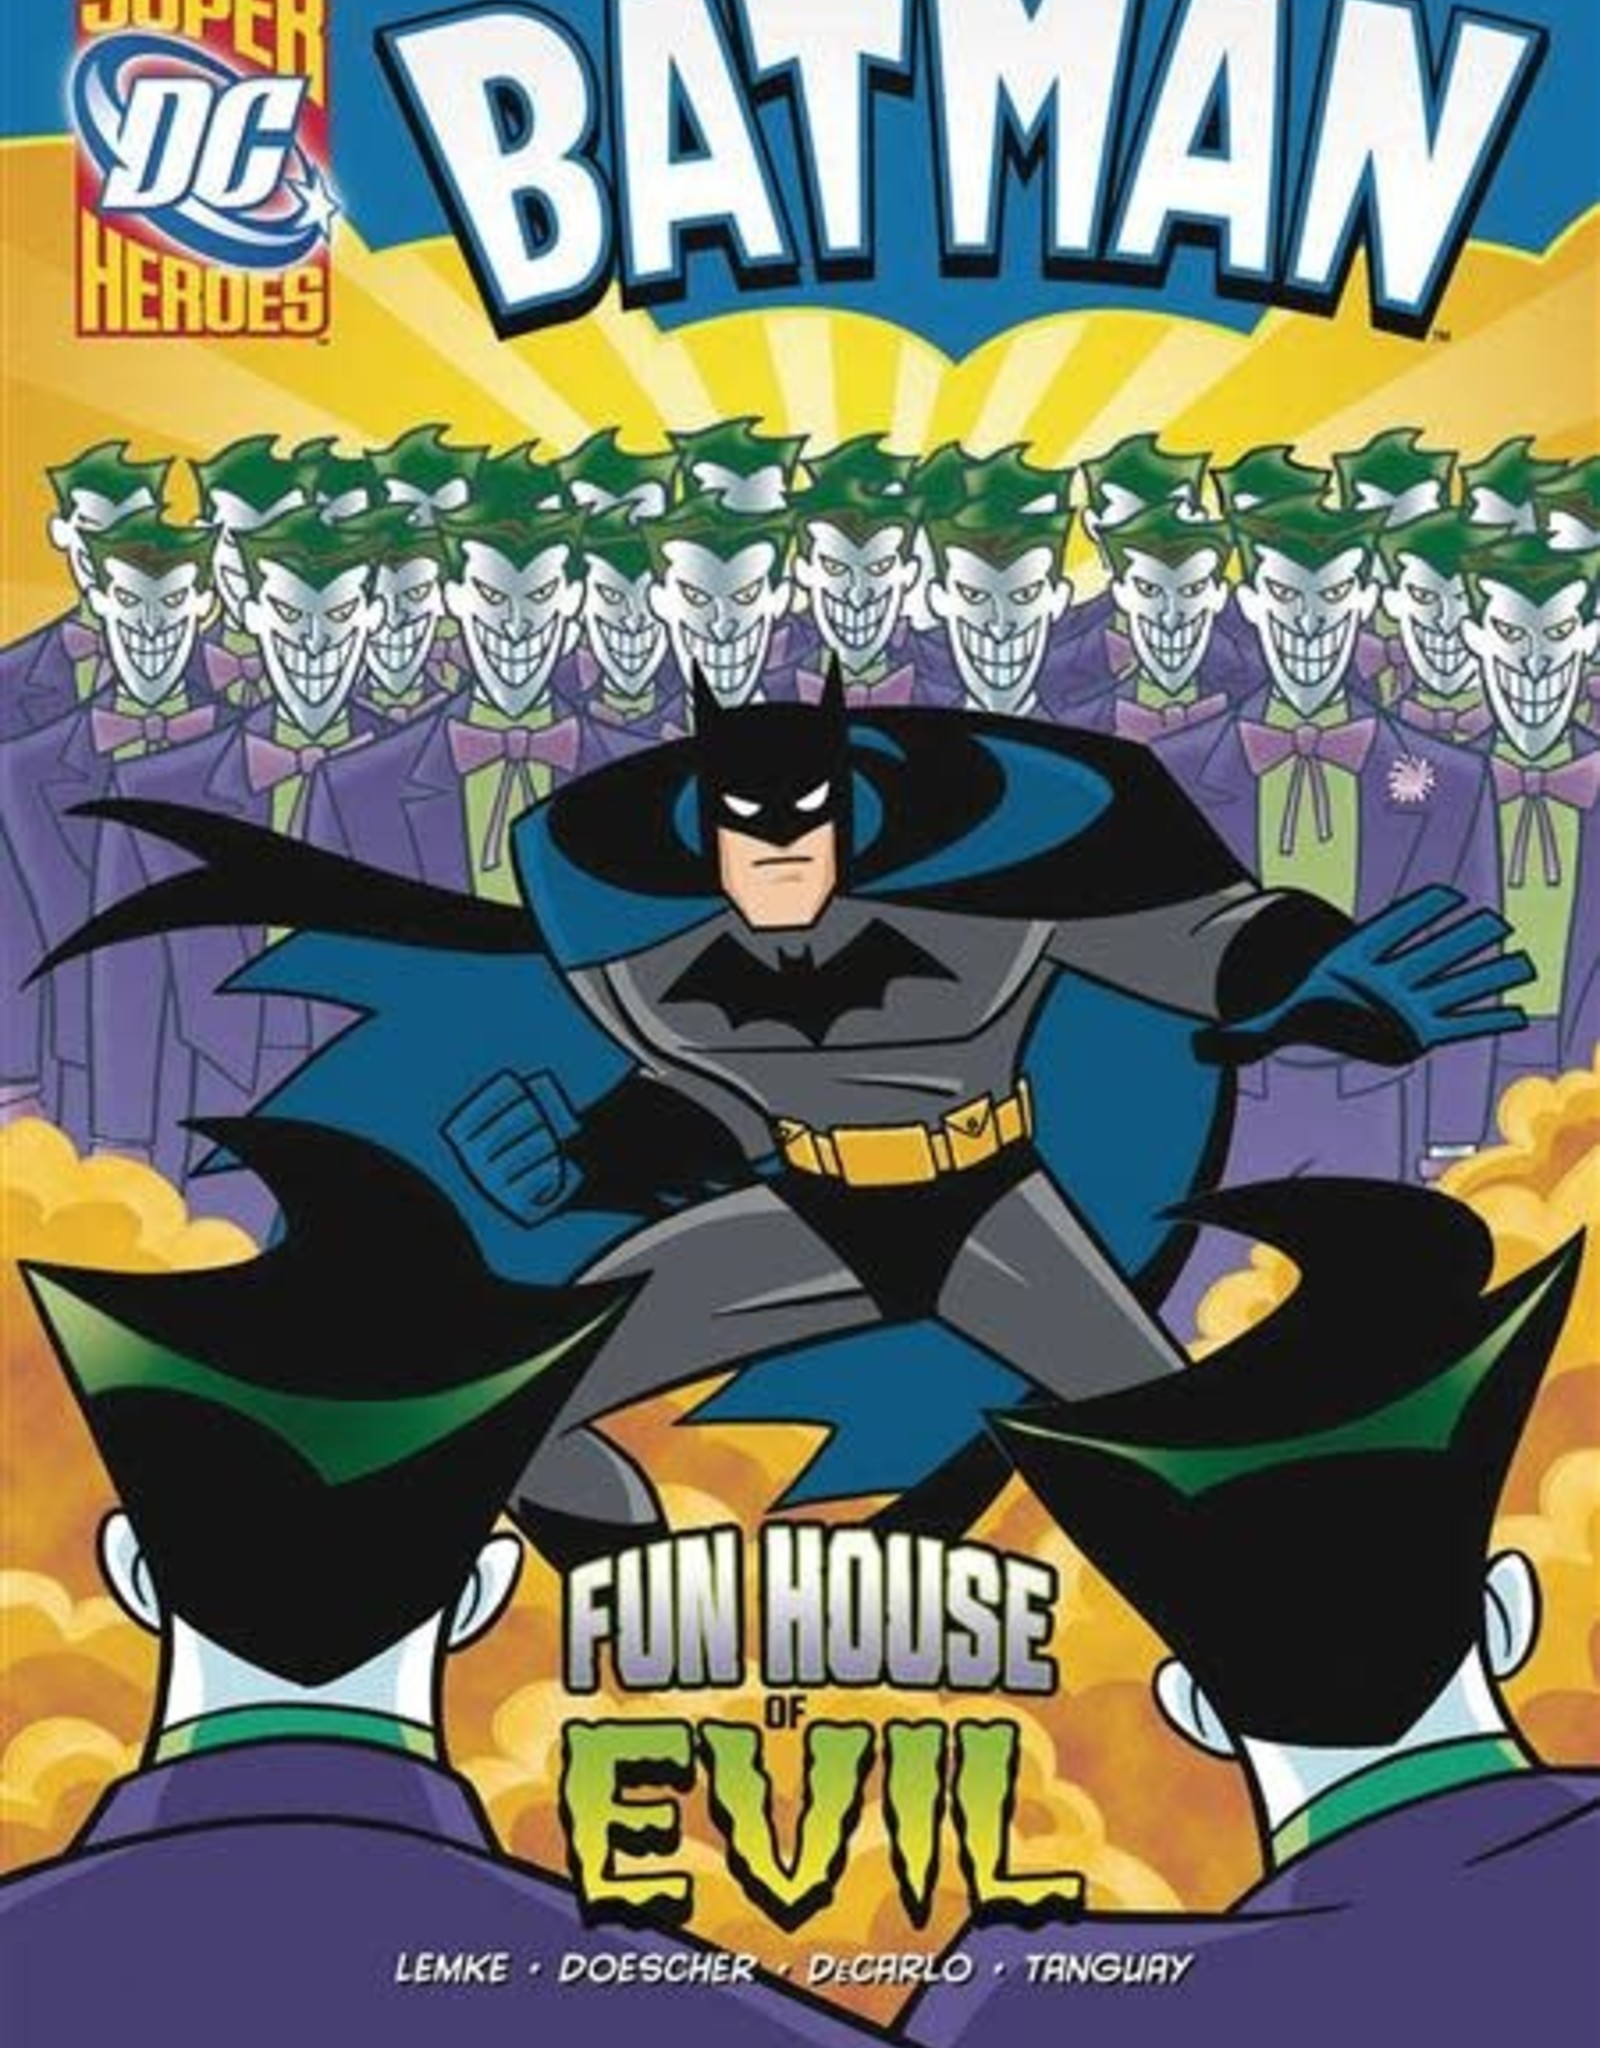 STONE ARCH BOOKS DC SUPER HEROES BATMAN YR TP FUN HOUSE OF EVIL